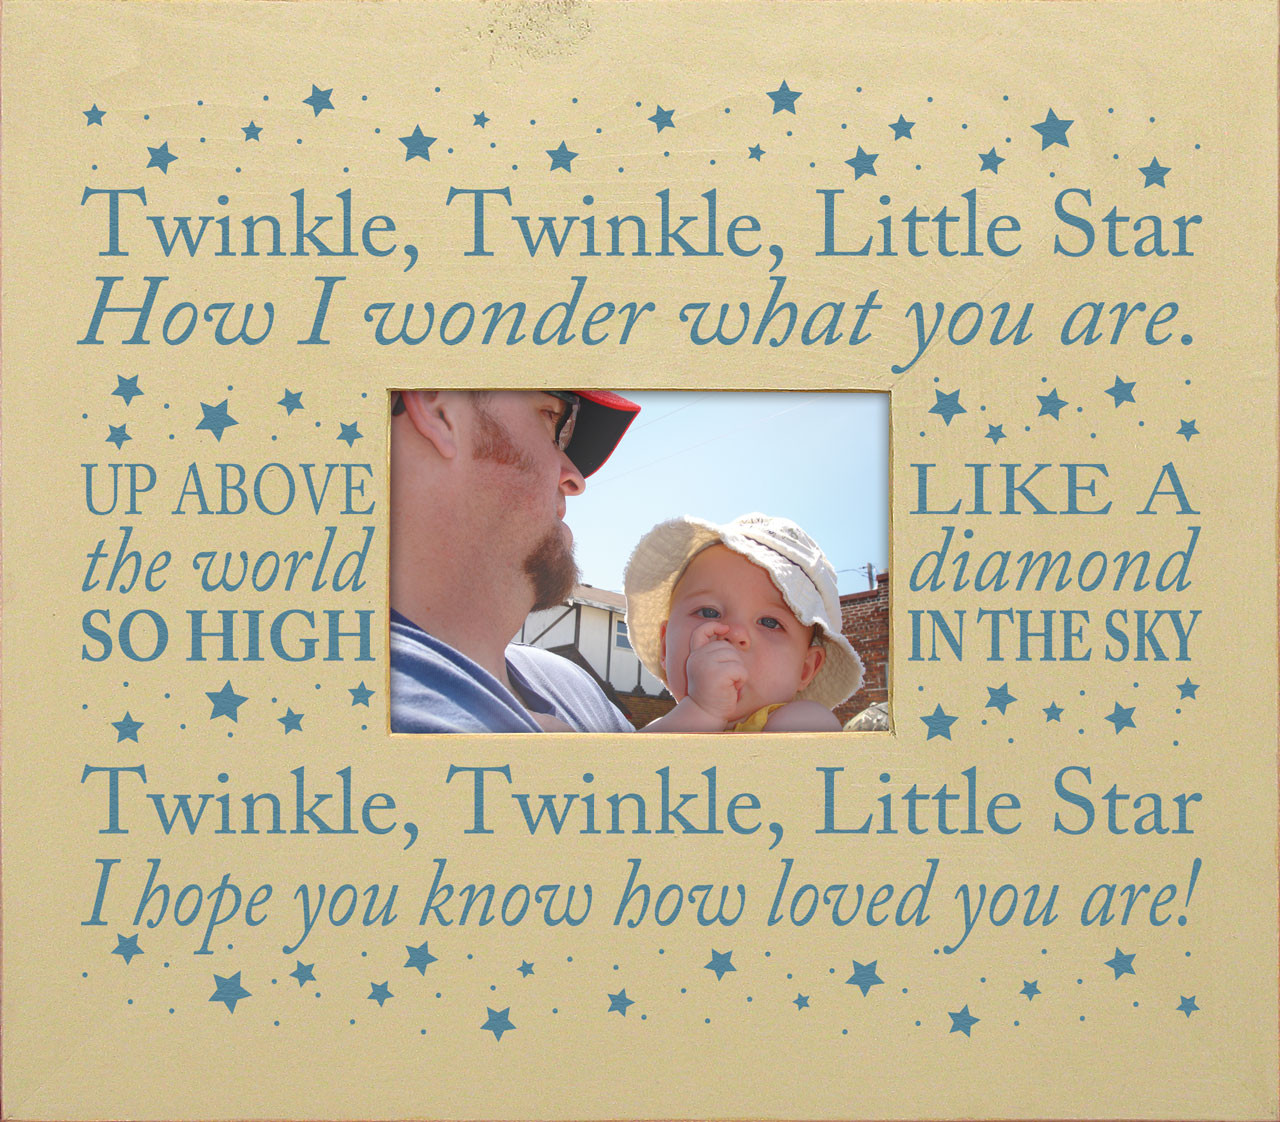 twinkle twinkle little star how i wonder what you are